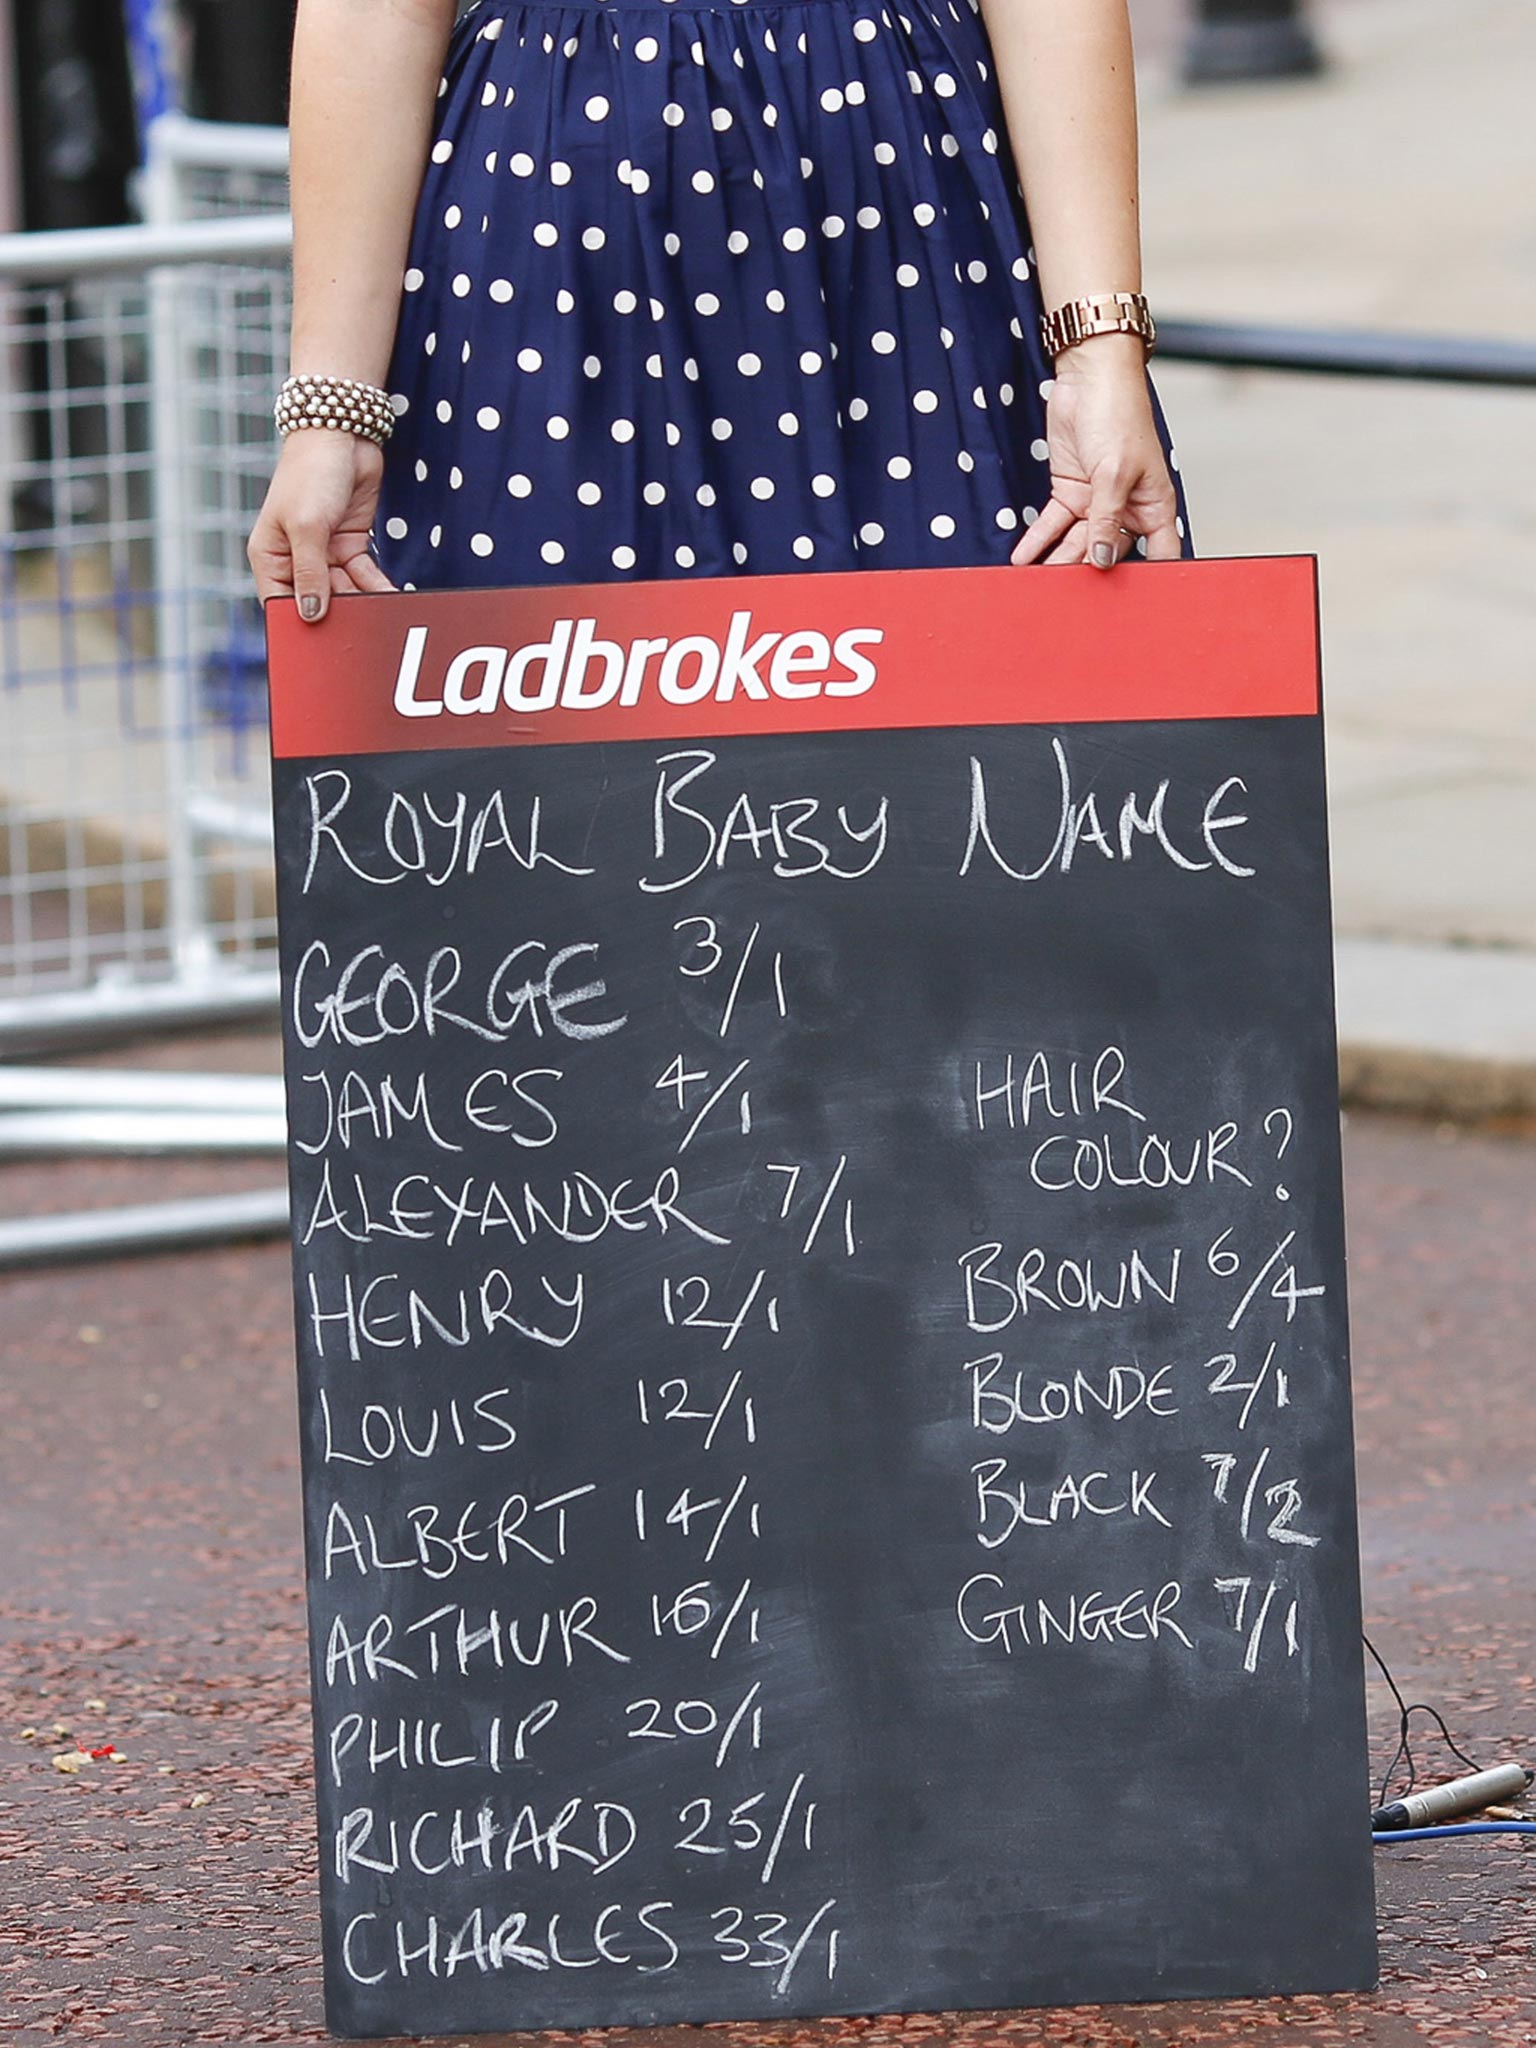 Royal baby name betting odds forex 1 hour scalping strategy #7